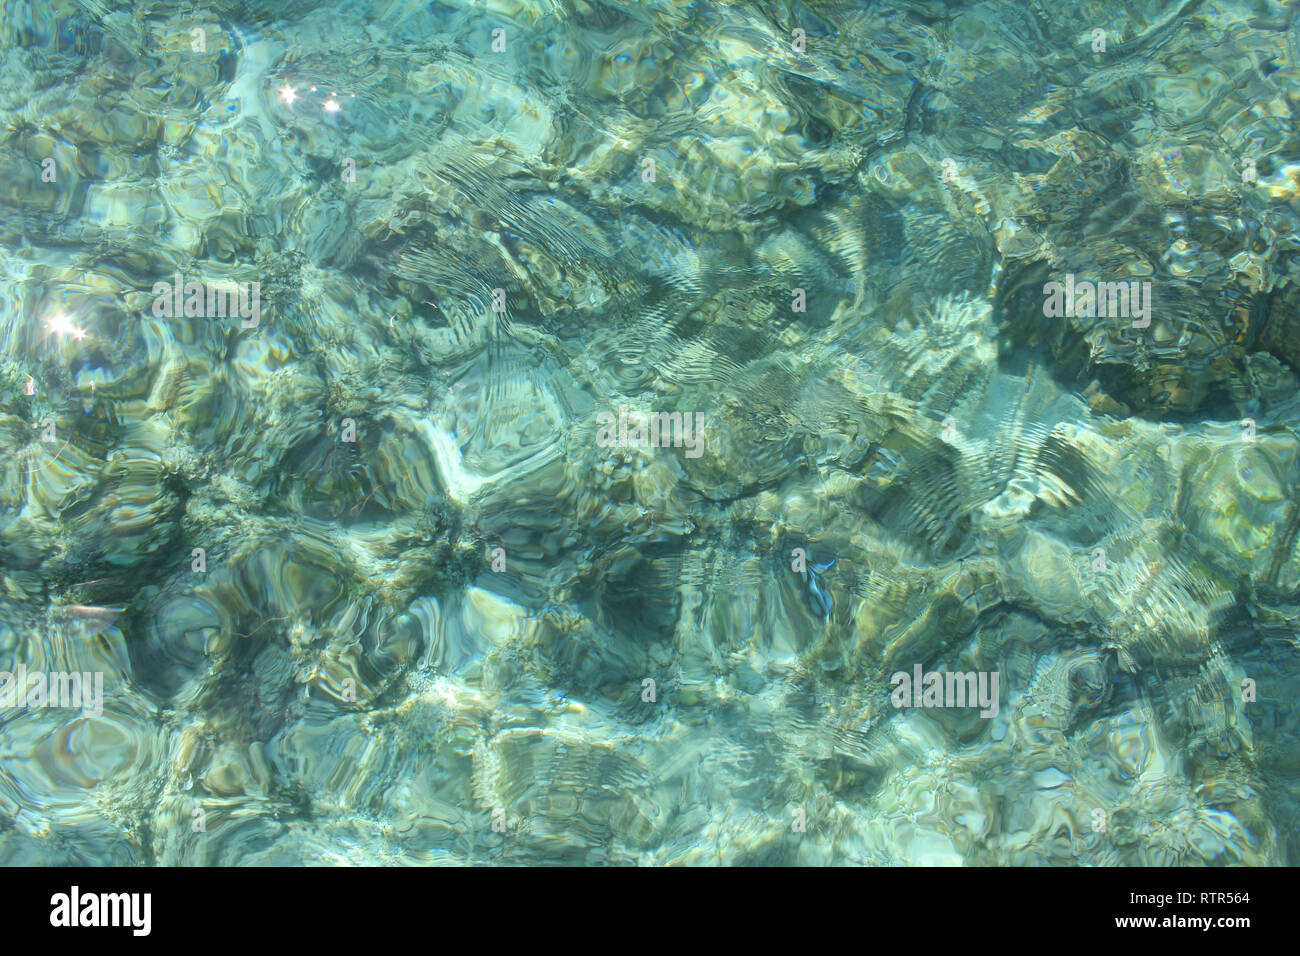 Shimmering Sea in the Shallows - Stock Image